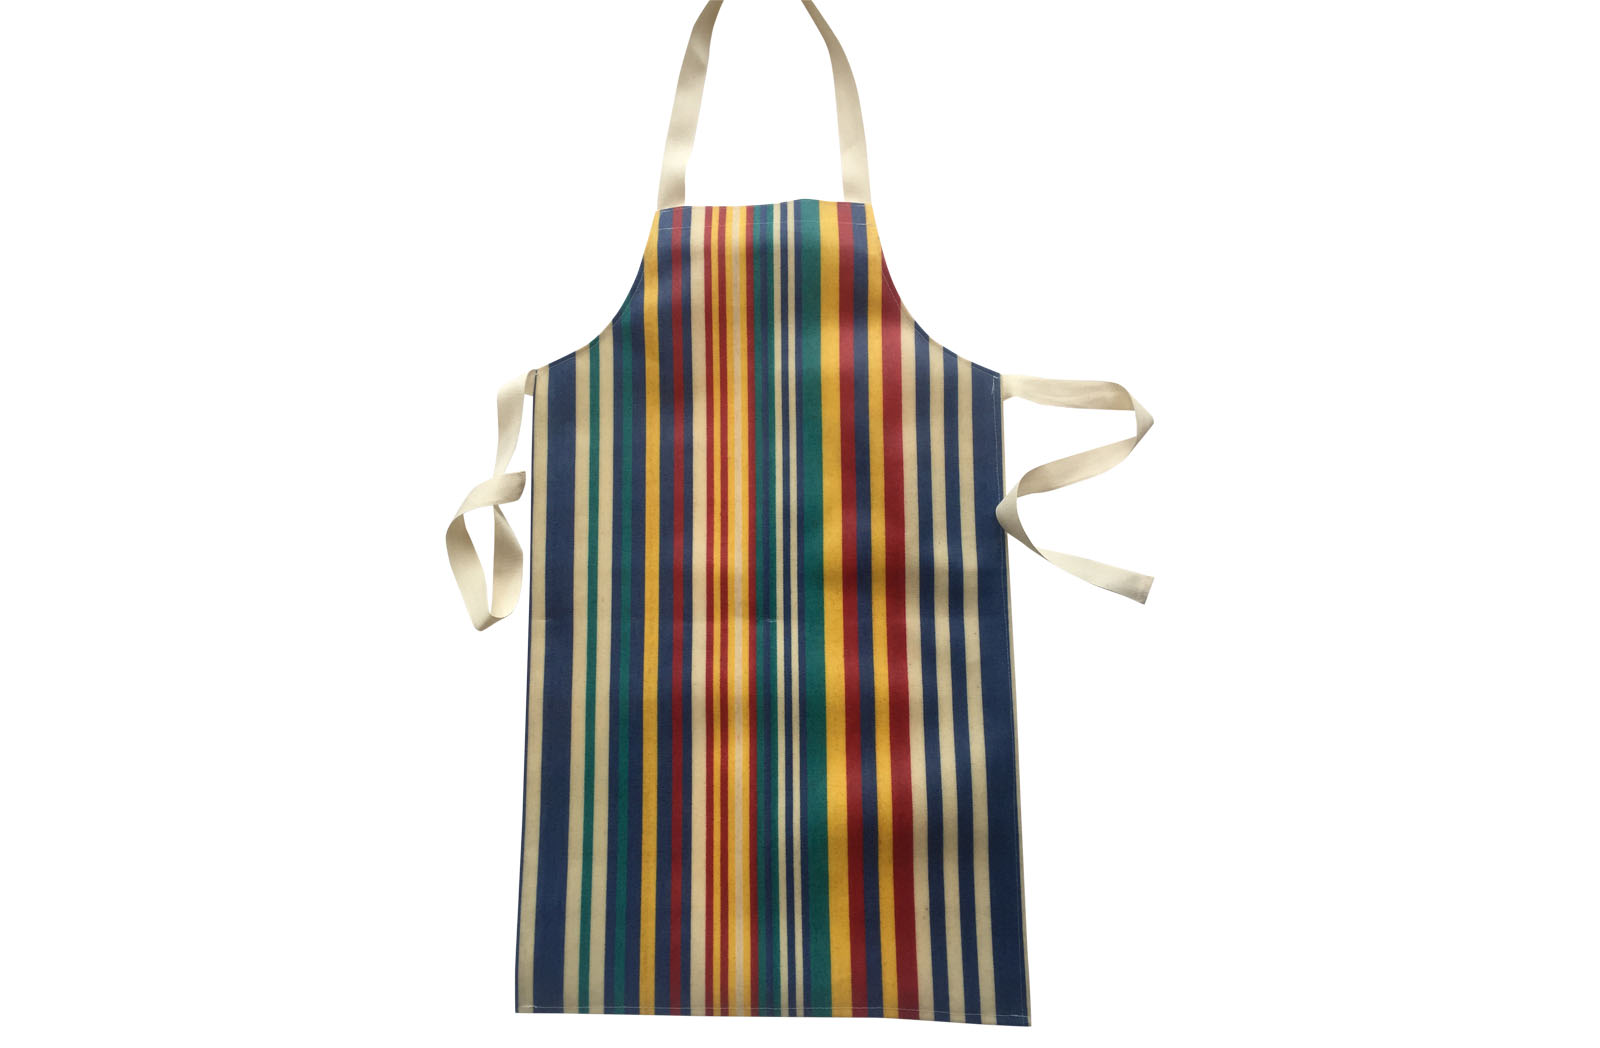 Striped Childs PVC Apron st-ripes of denim blue, turquoise, red and yellow